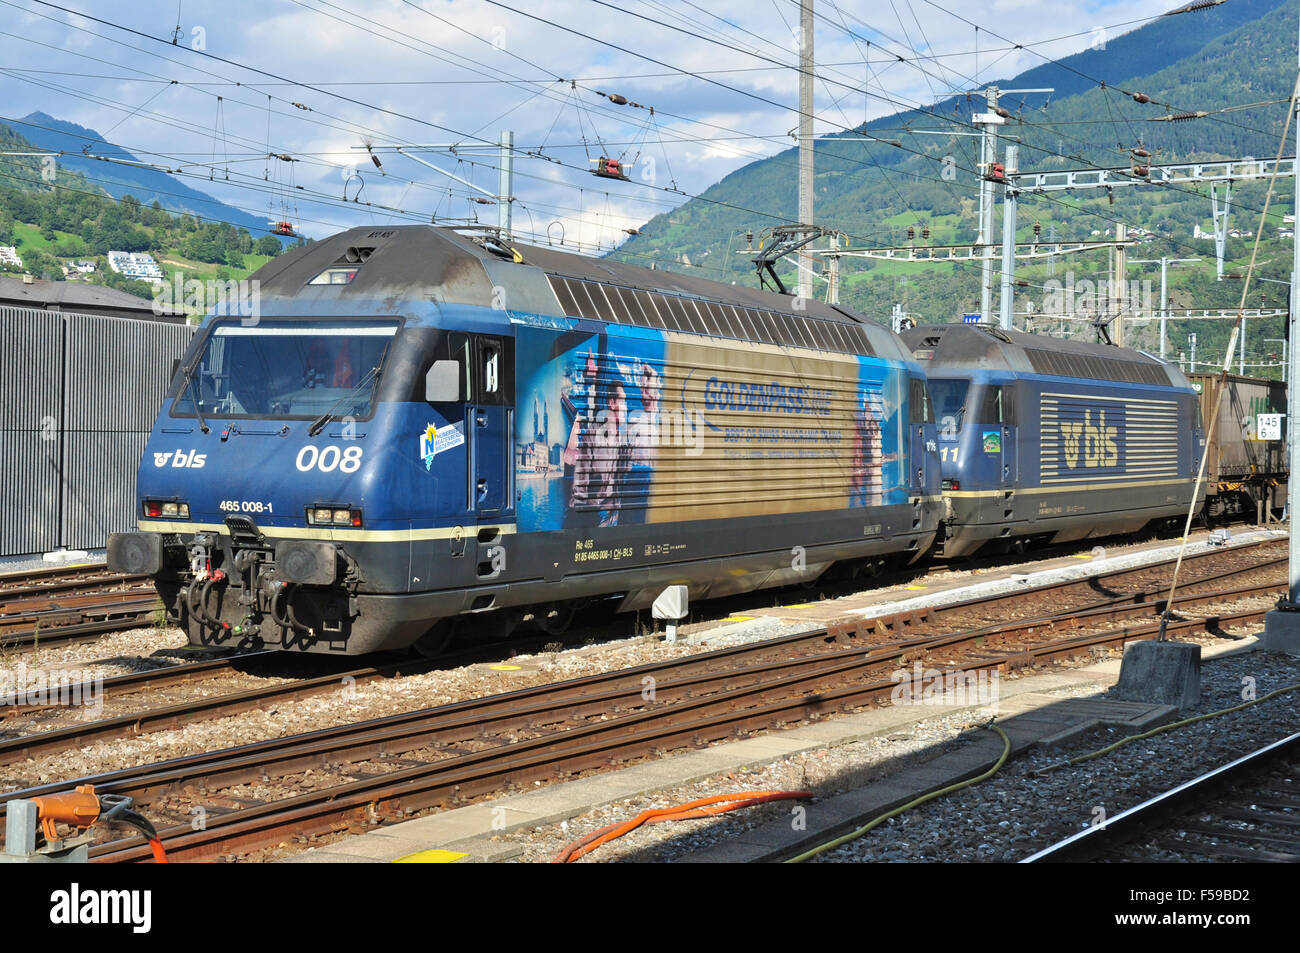 Class Re 465 electric locomotives double head a freight through Brig station headed by 465008, Brig, Valais, Switzerland Stock Photo